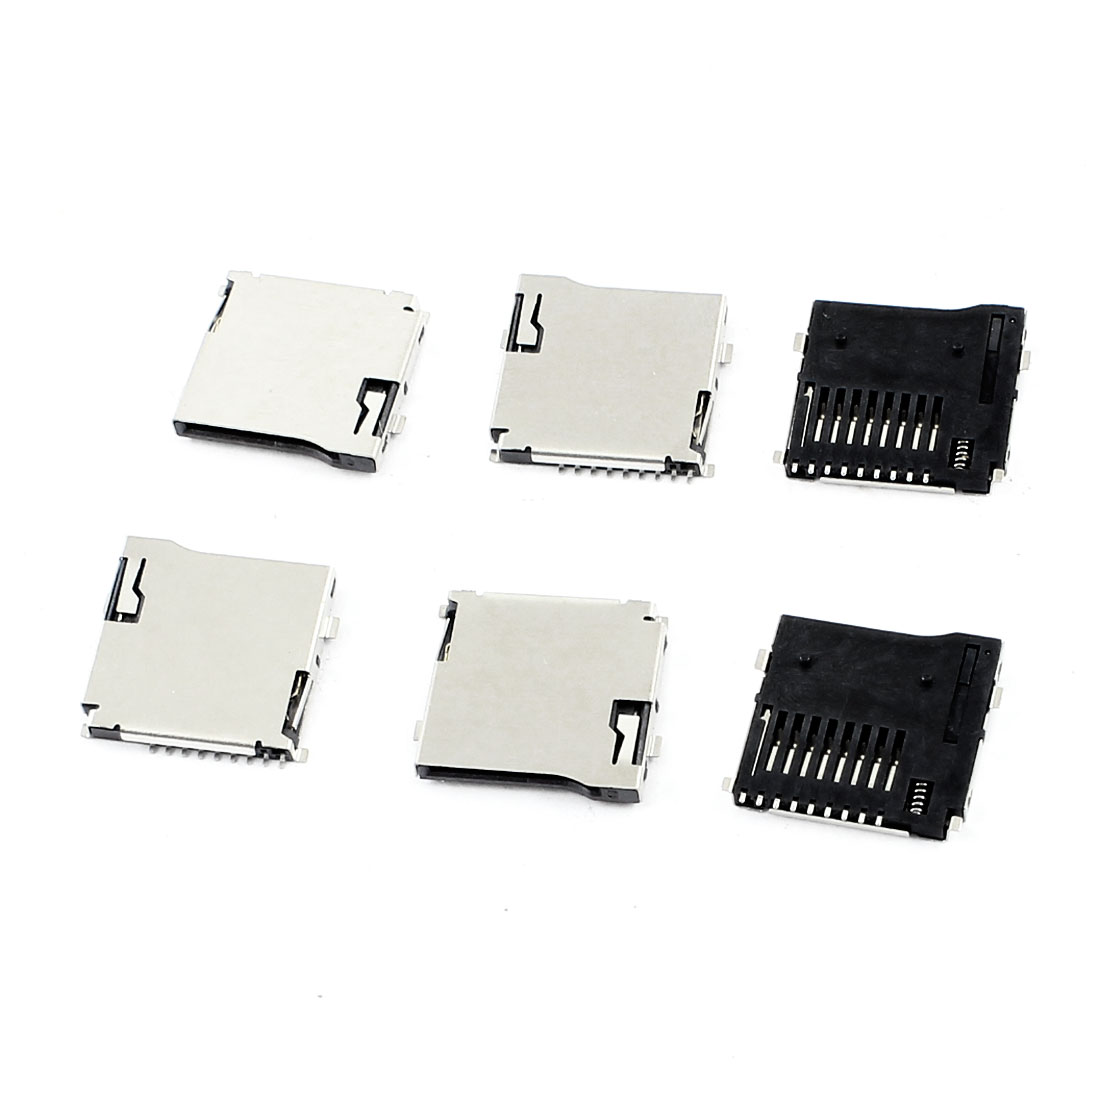 6 Pcs Smart Phone Spring Loaded Transflash Micro SD Card Sockets Slots